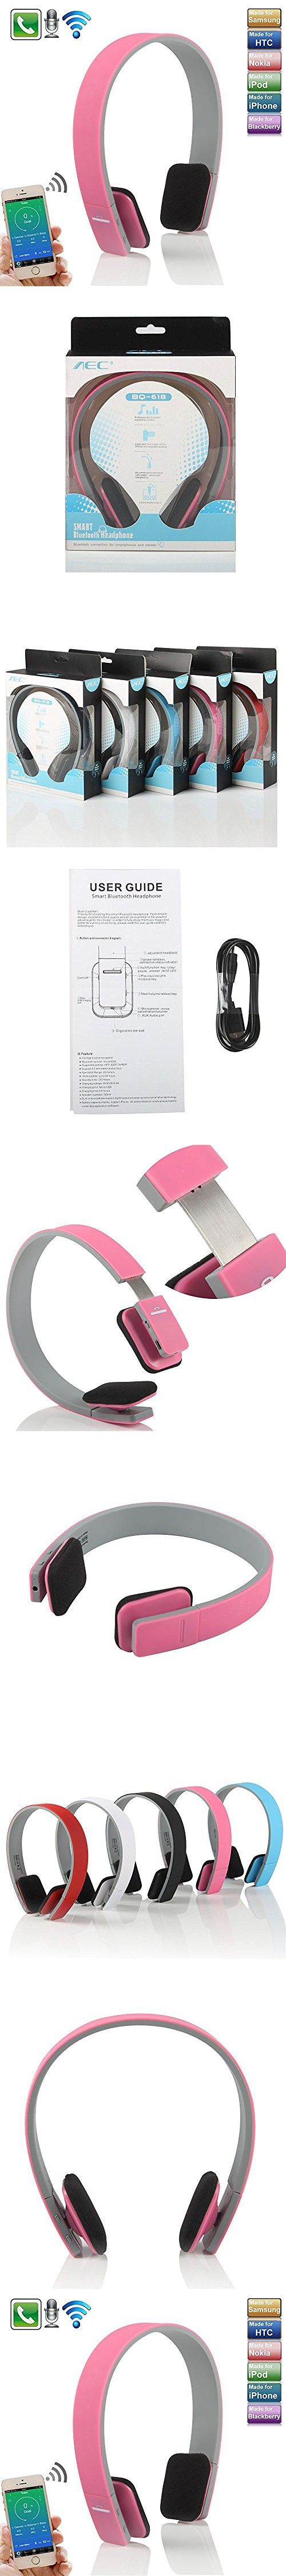 Bluetooth Headphone for ipad,elecfan New Wireless Bluetooth Headset Stereo Earphone Mic for Tablet PC and all iPhones and all ipads ipod Samsung Phones (Pink)